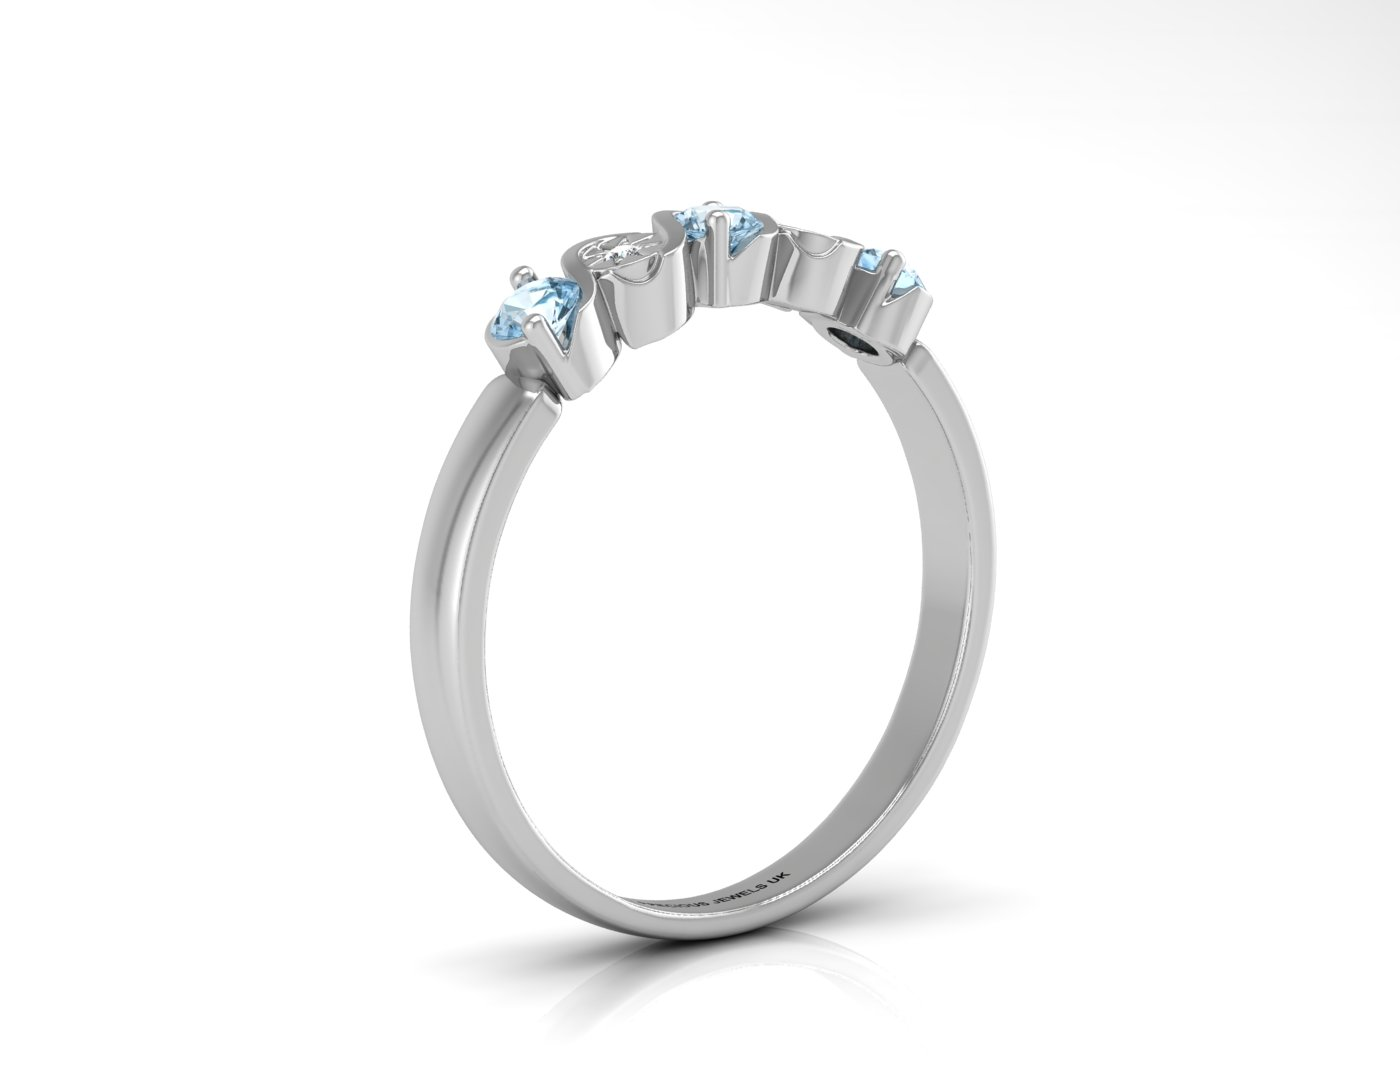 9ct White Gold Semi Eternity Diamond And Blue Topaz Ring 0.01 Carats - Image 2 of 4